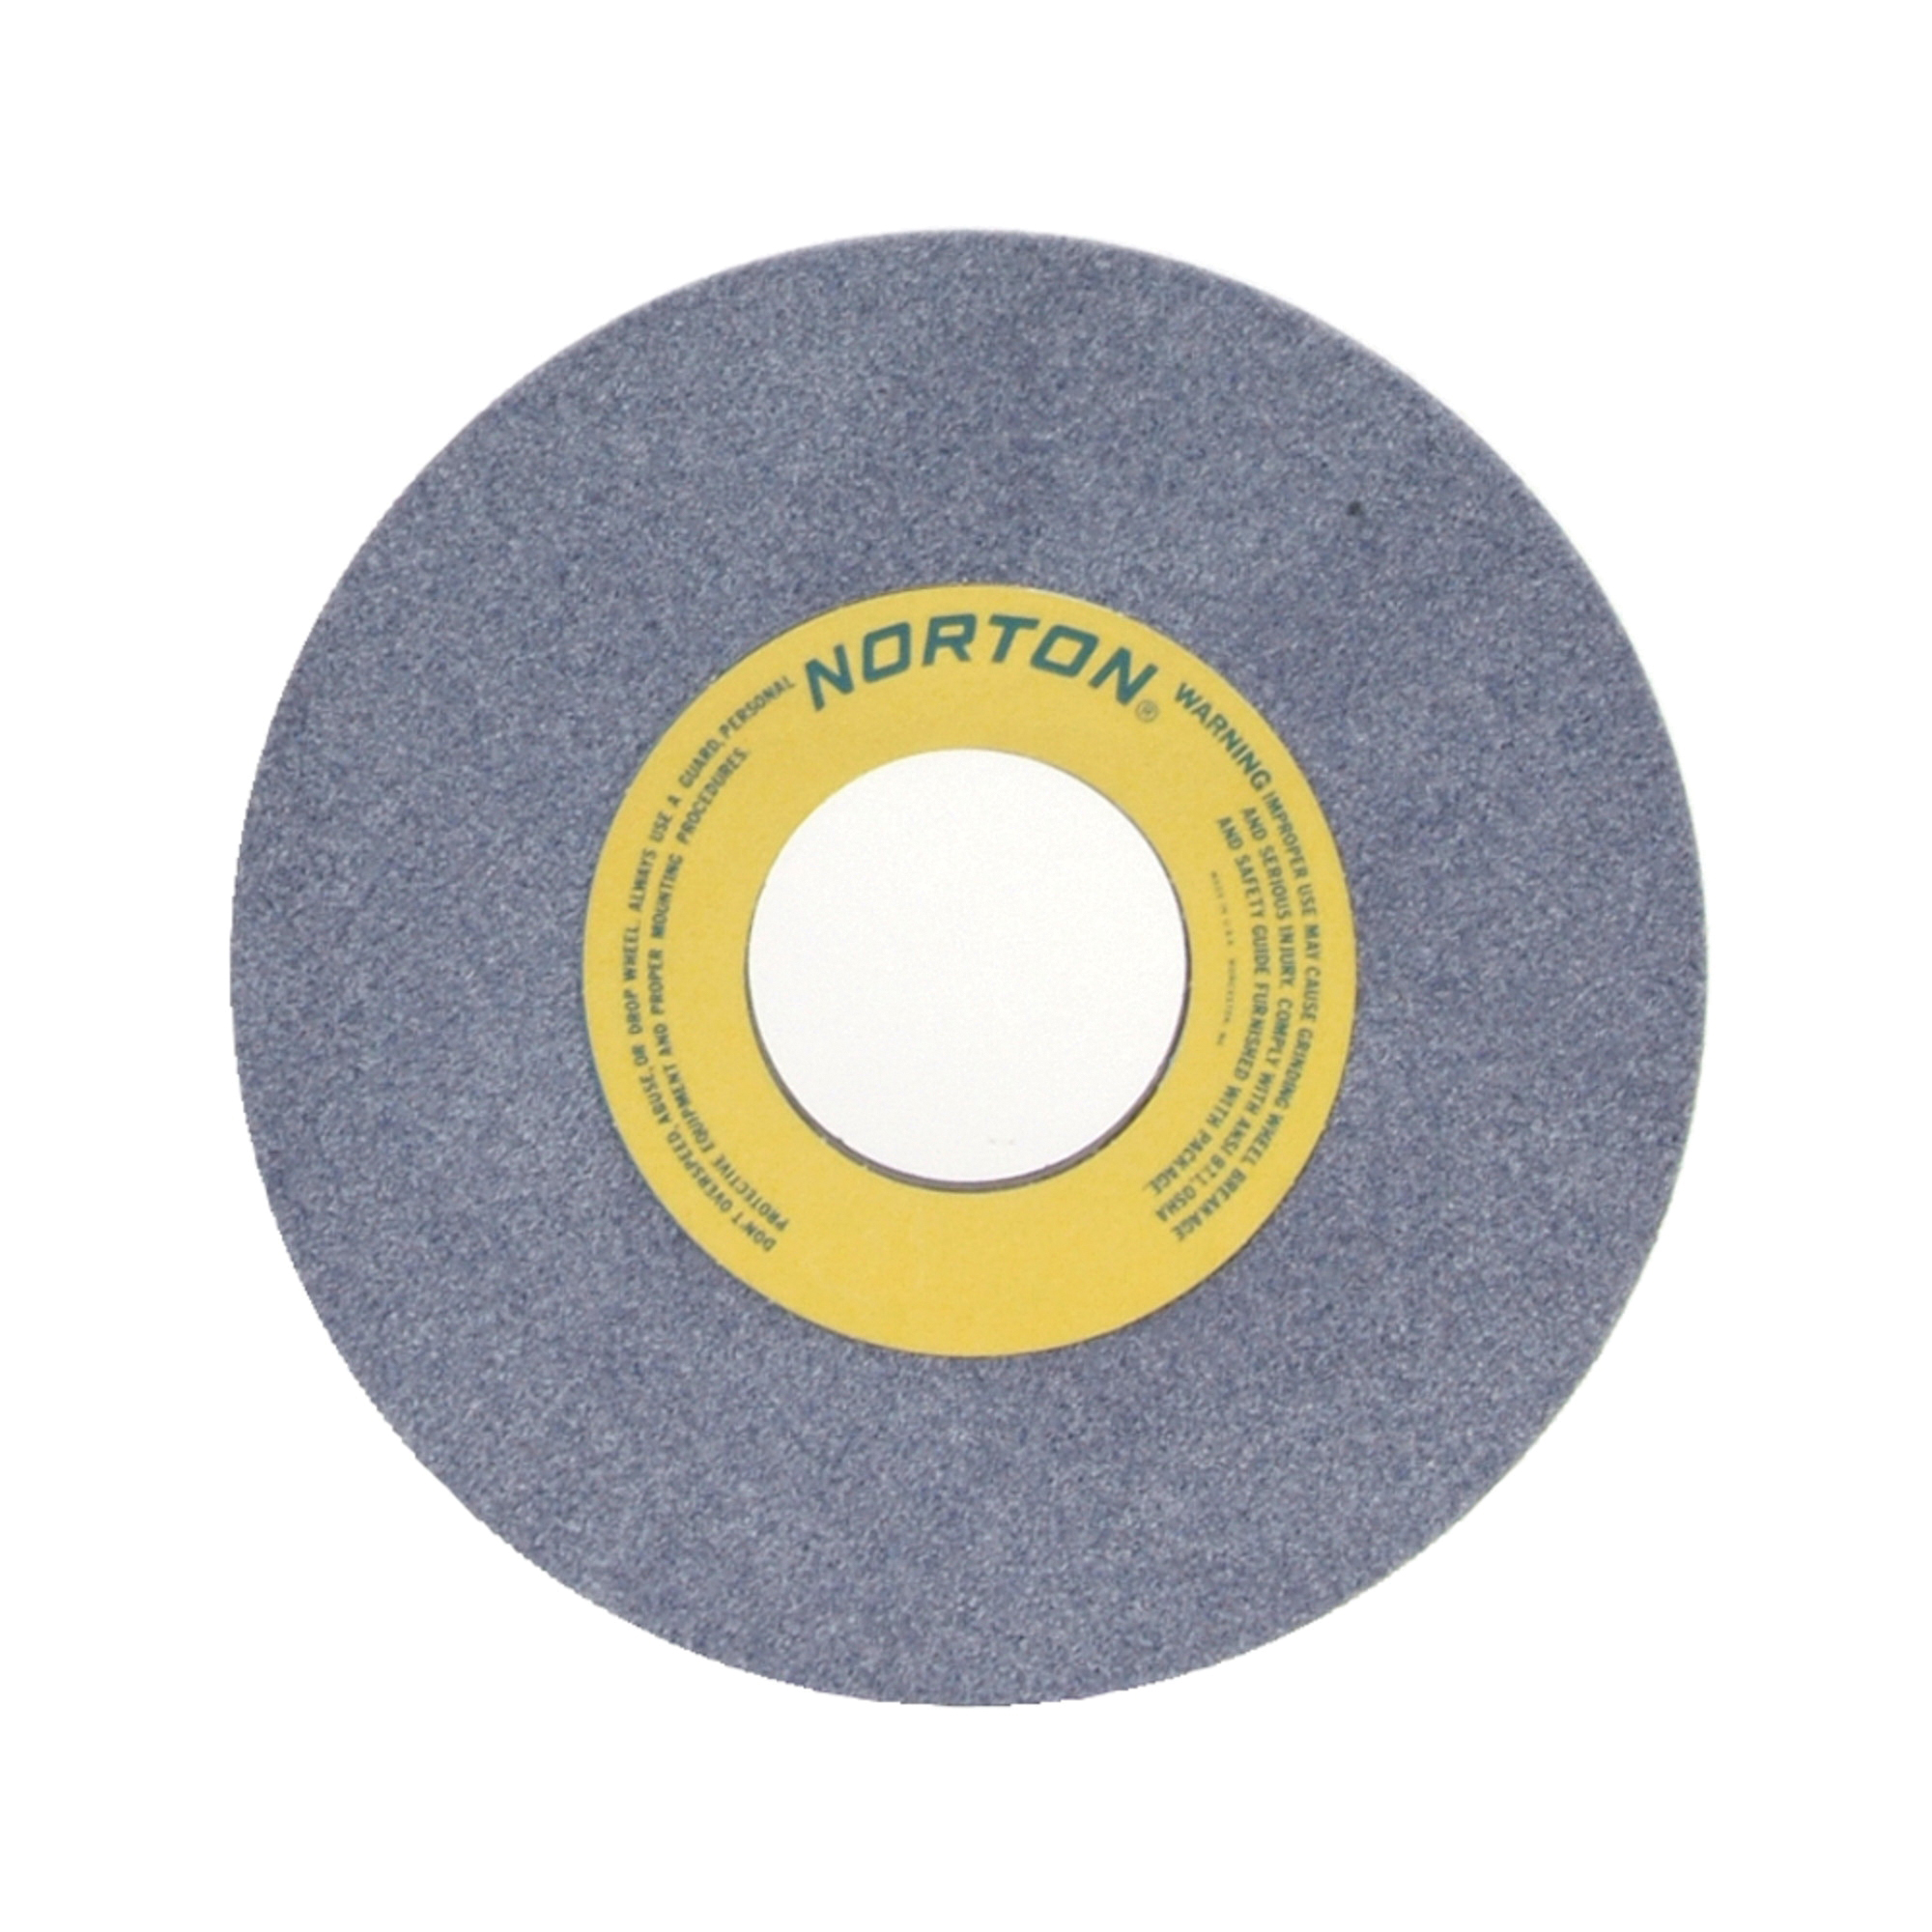 Norton® 66253138903 32AA Straight Toolroom Wheel, 10 in Dia x 1 in THK, 3 in Center Hole, 46 Grit, Aluminum Oxide Abrasive